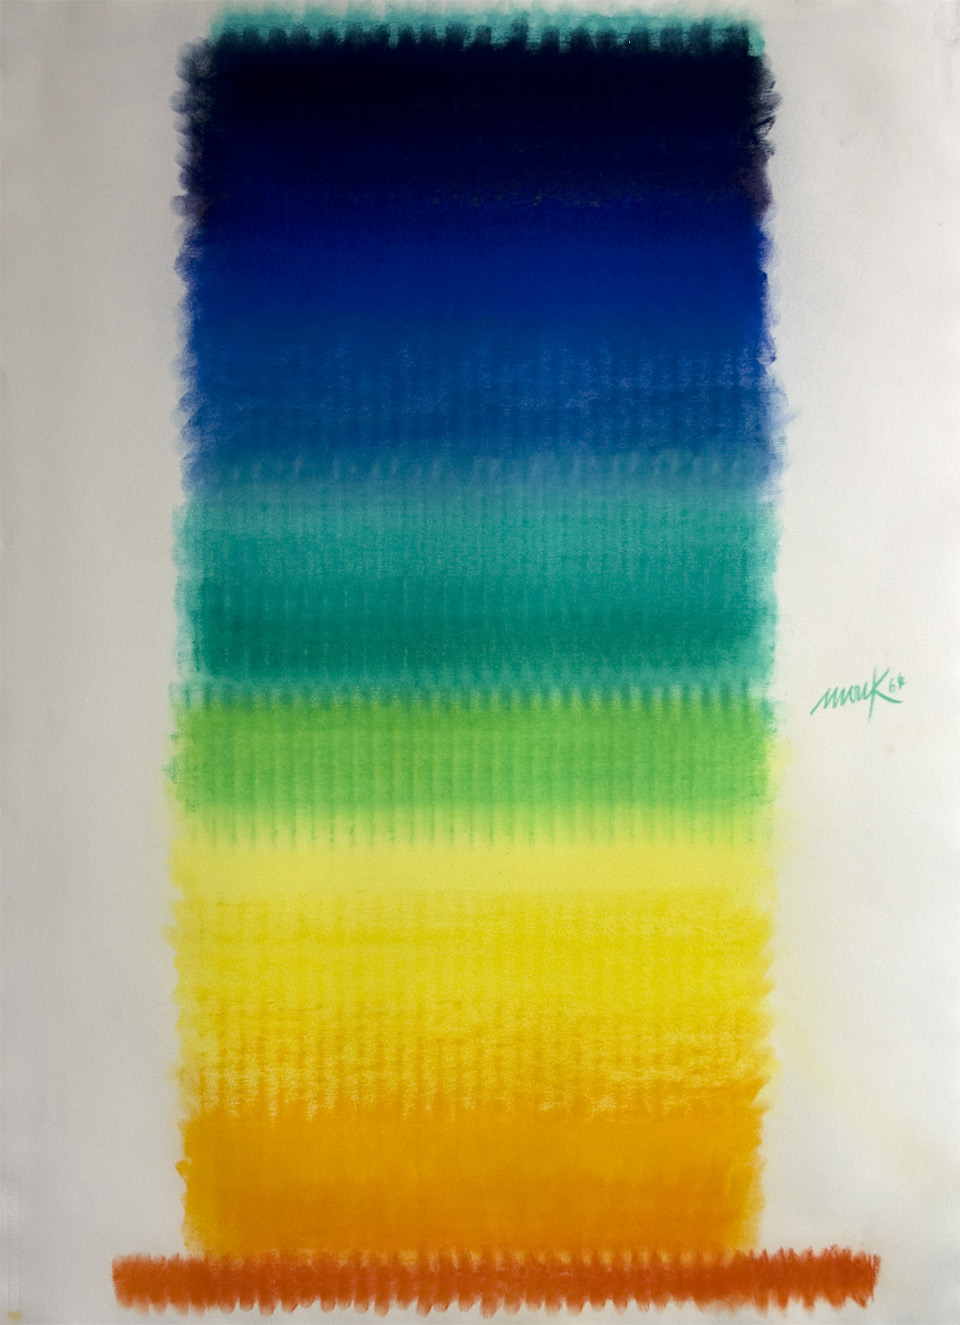 Heinz Mack, Ohne Titel, 1964, Collection ZERO foundation, Düsseldorf